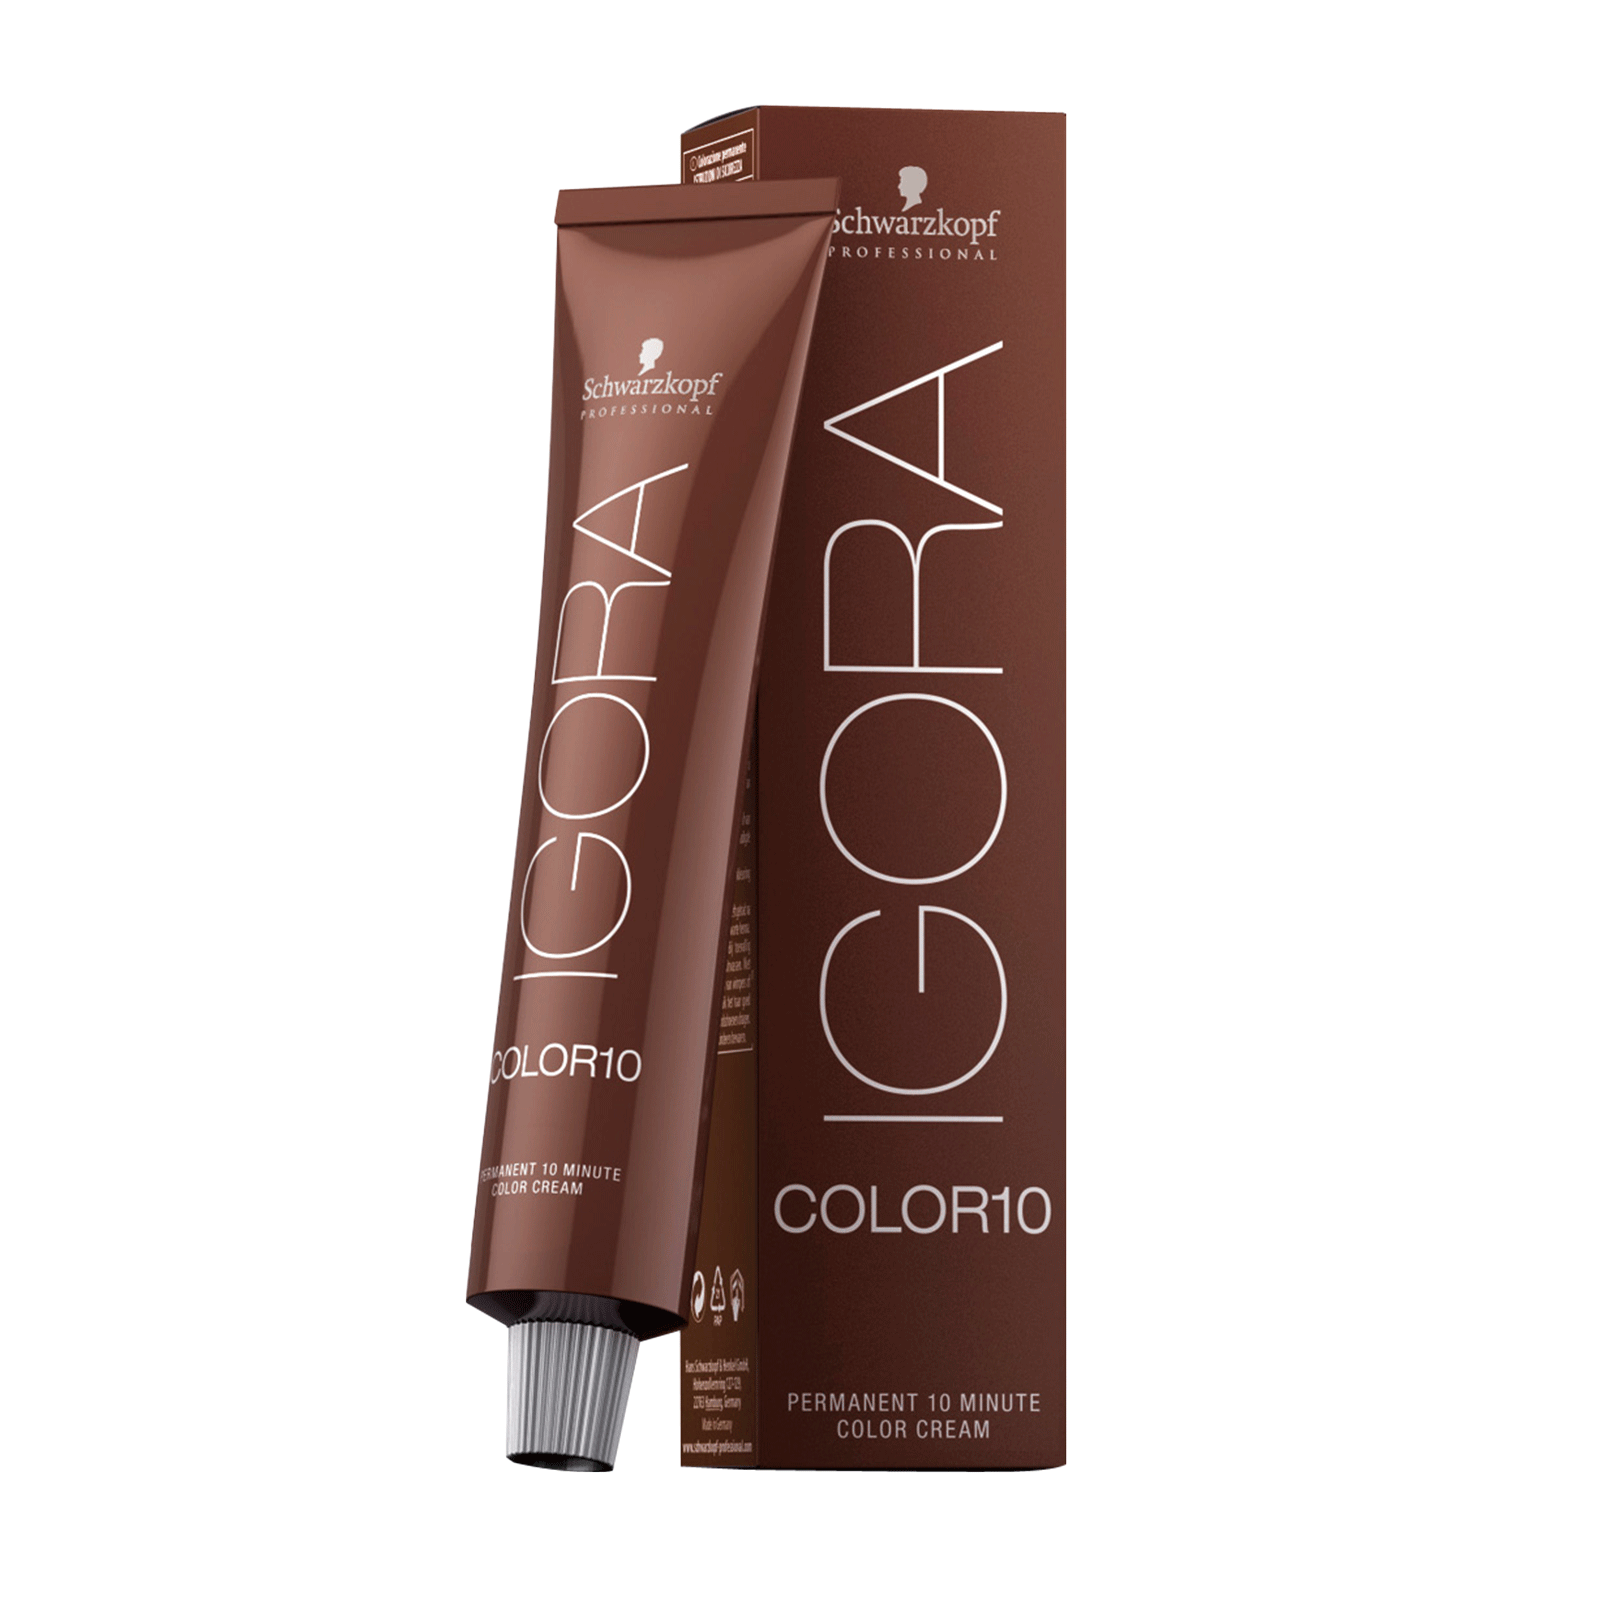 Igora color10 permanent hair color schwarzkopf professional igora color10 permanent hair color nvjuhfo Gallery